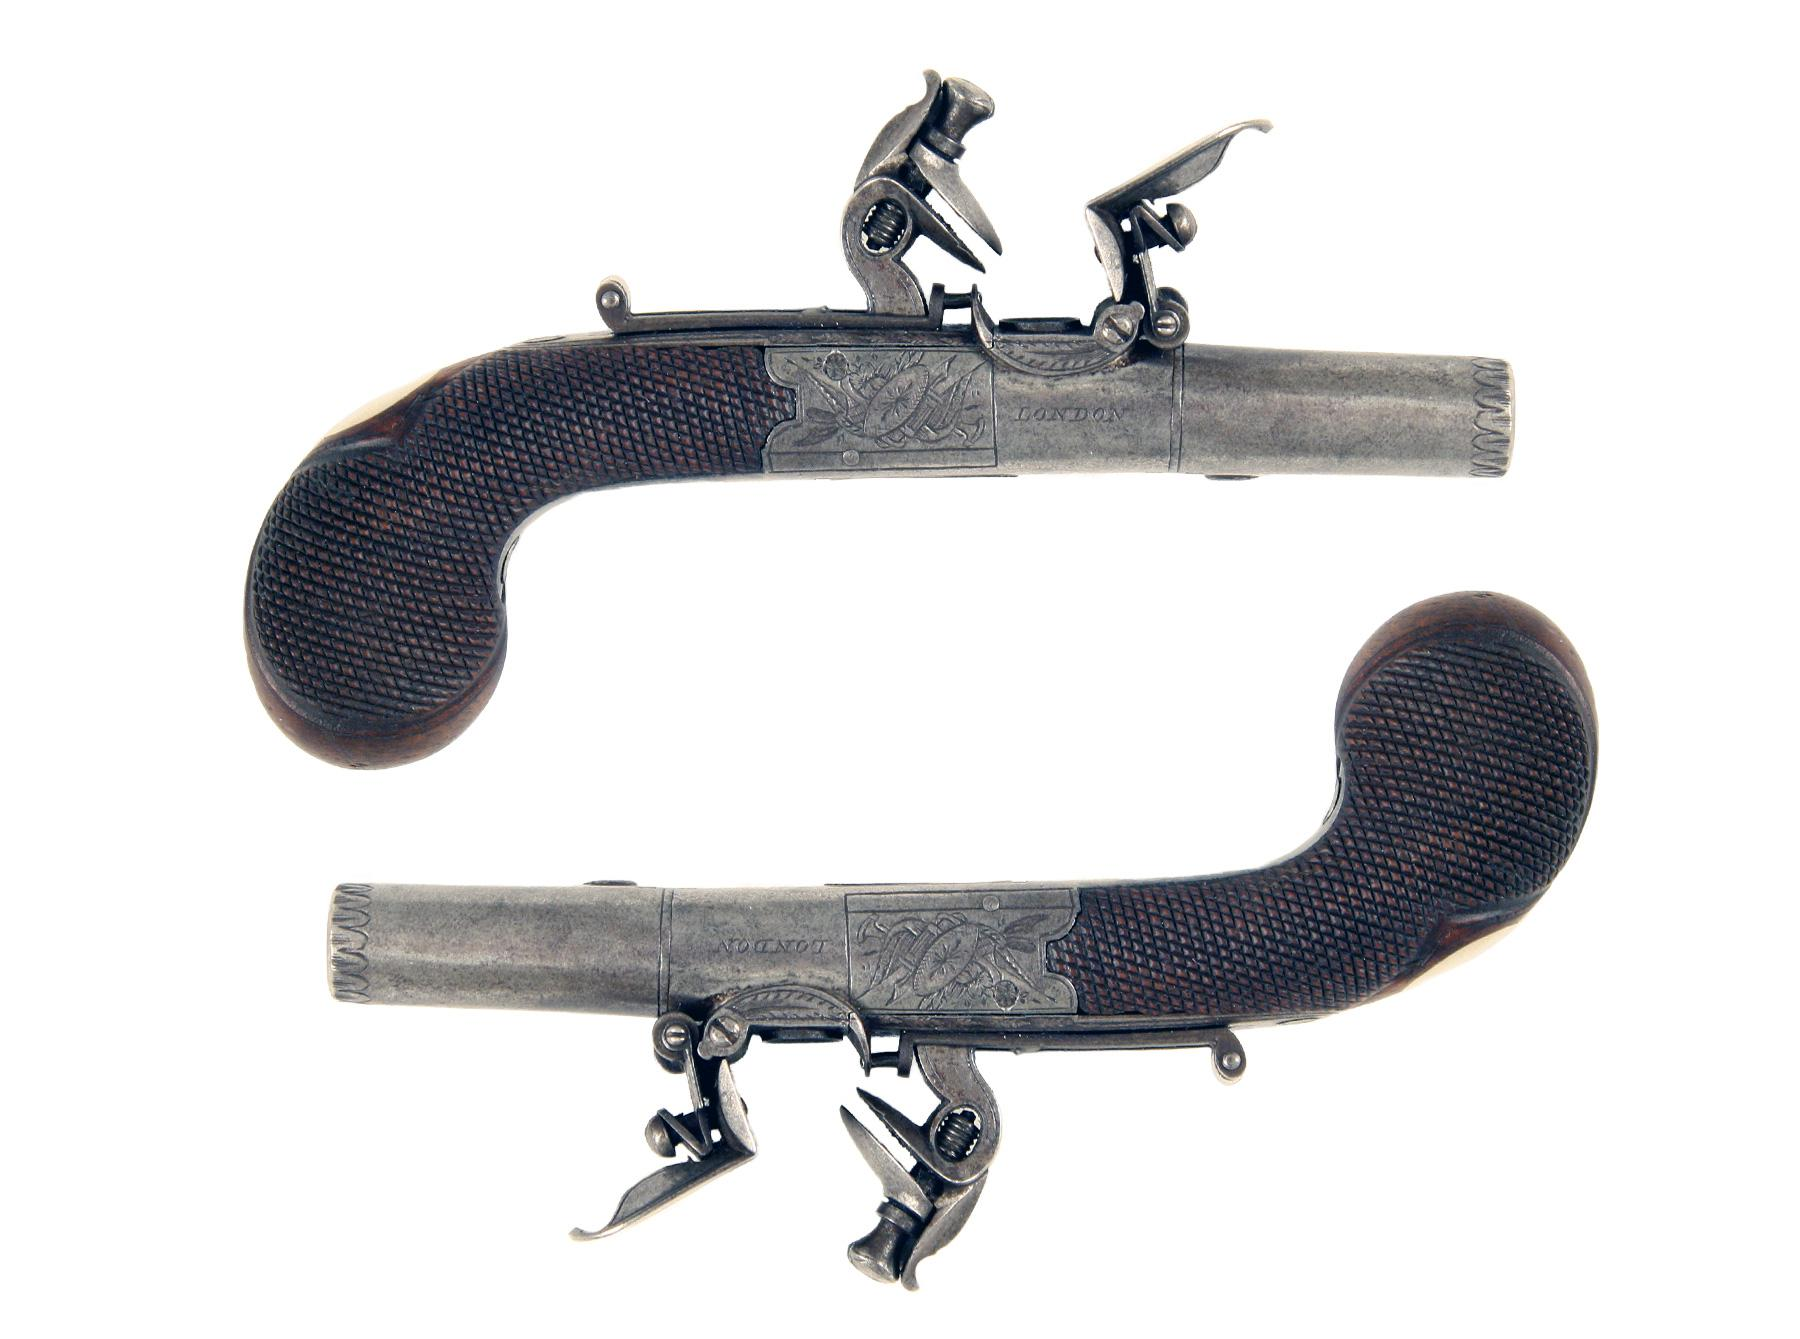 A Small Pair of Pocket Pistols